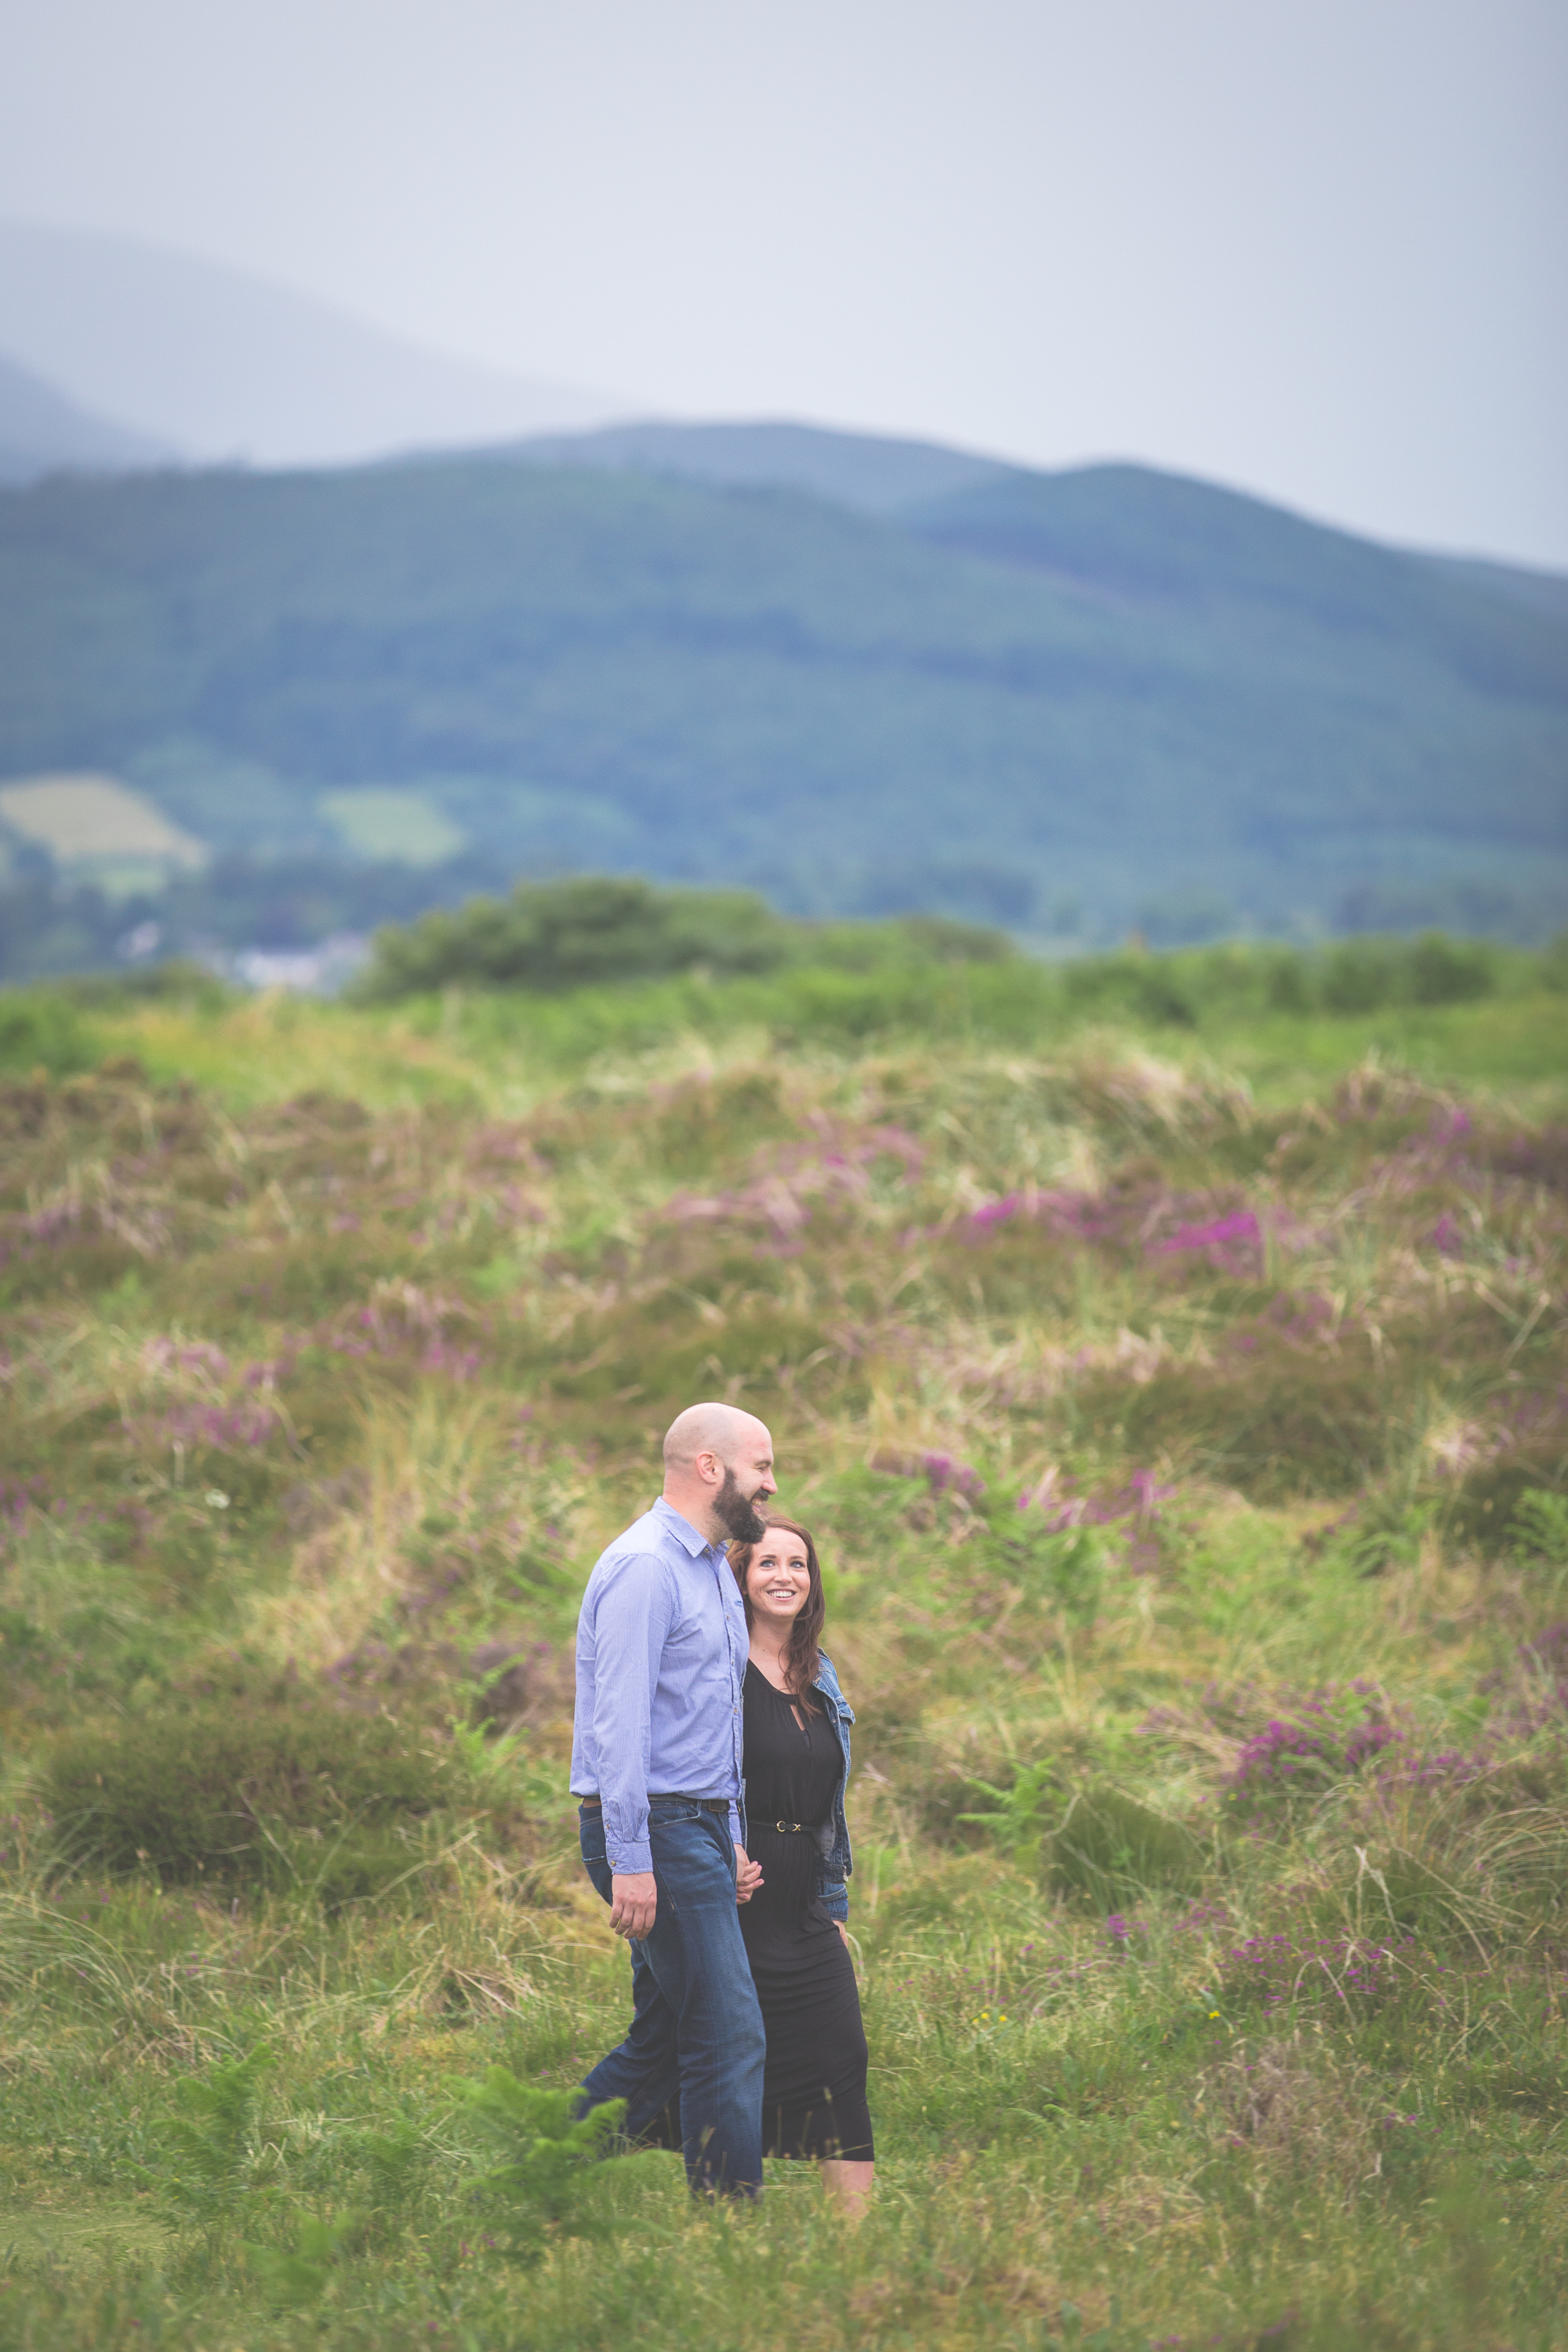 Northern Ireland Wedding Photographer | Brian McEwan | Clare & Colm-49.jpg